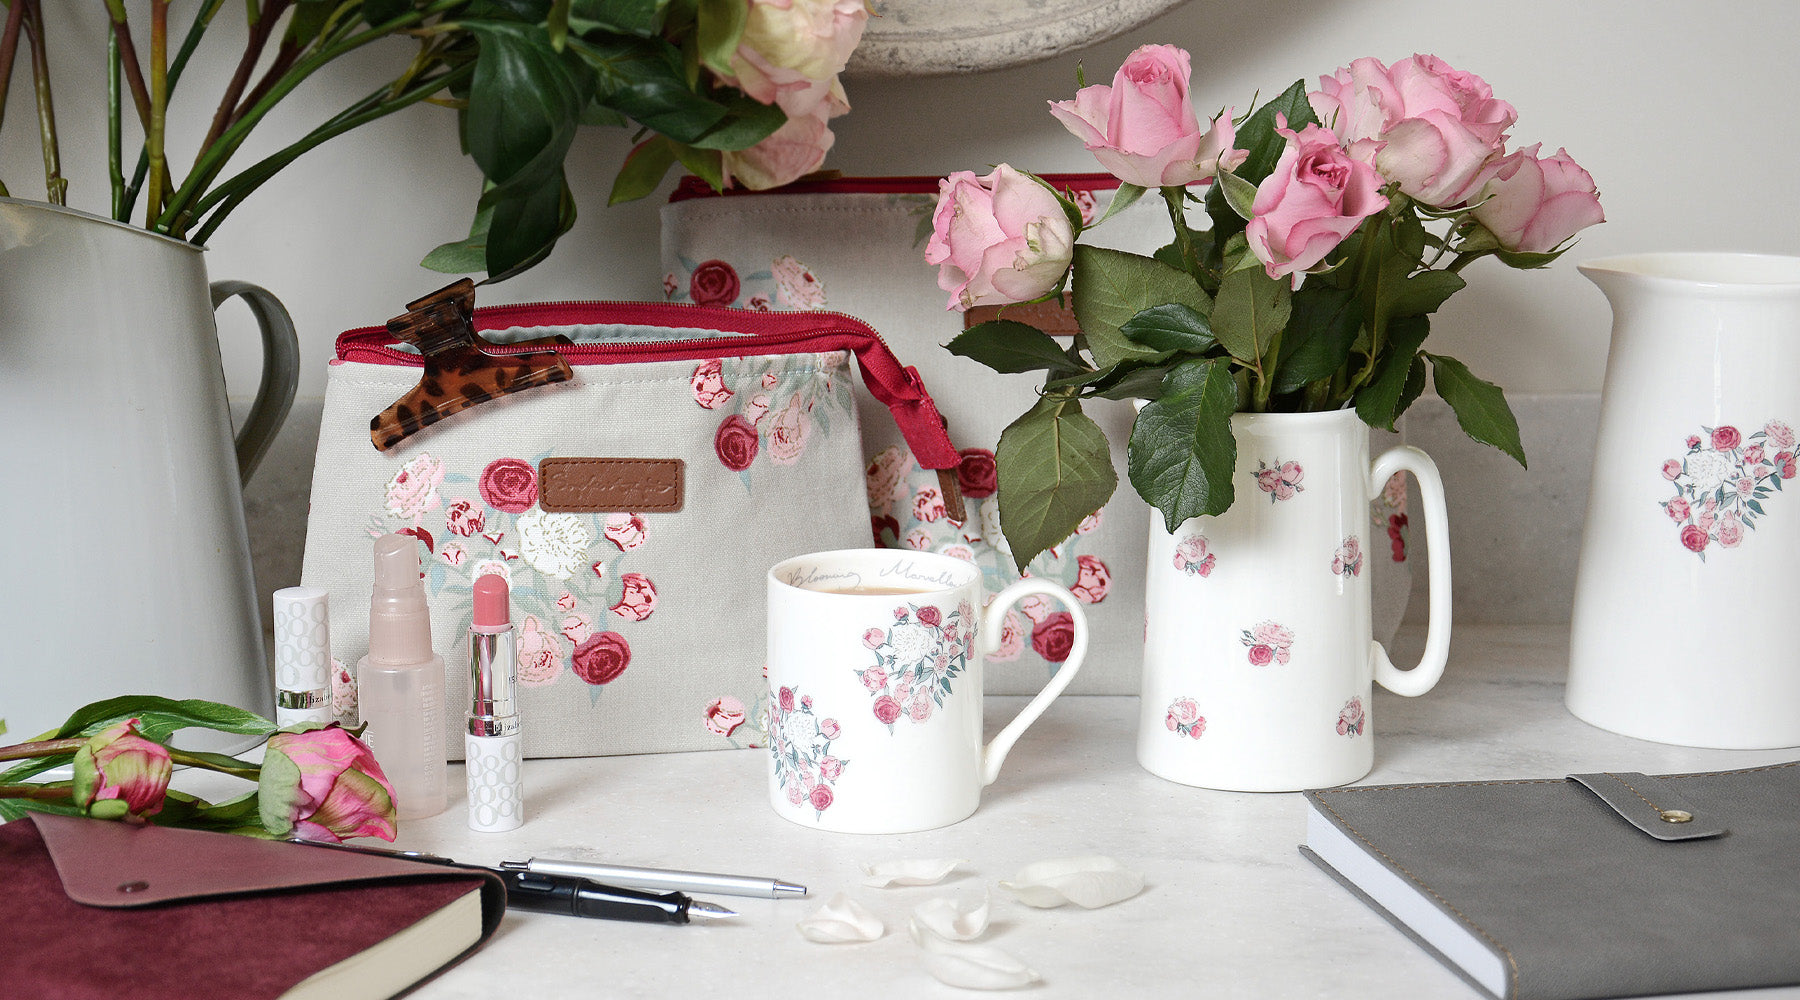 Peony homewares collection from Sophie Allport